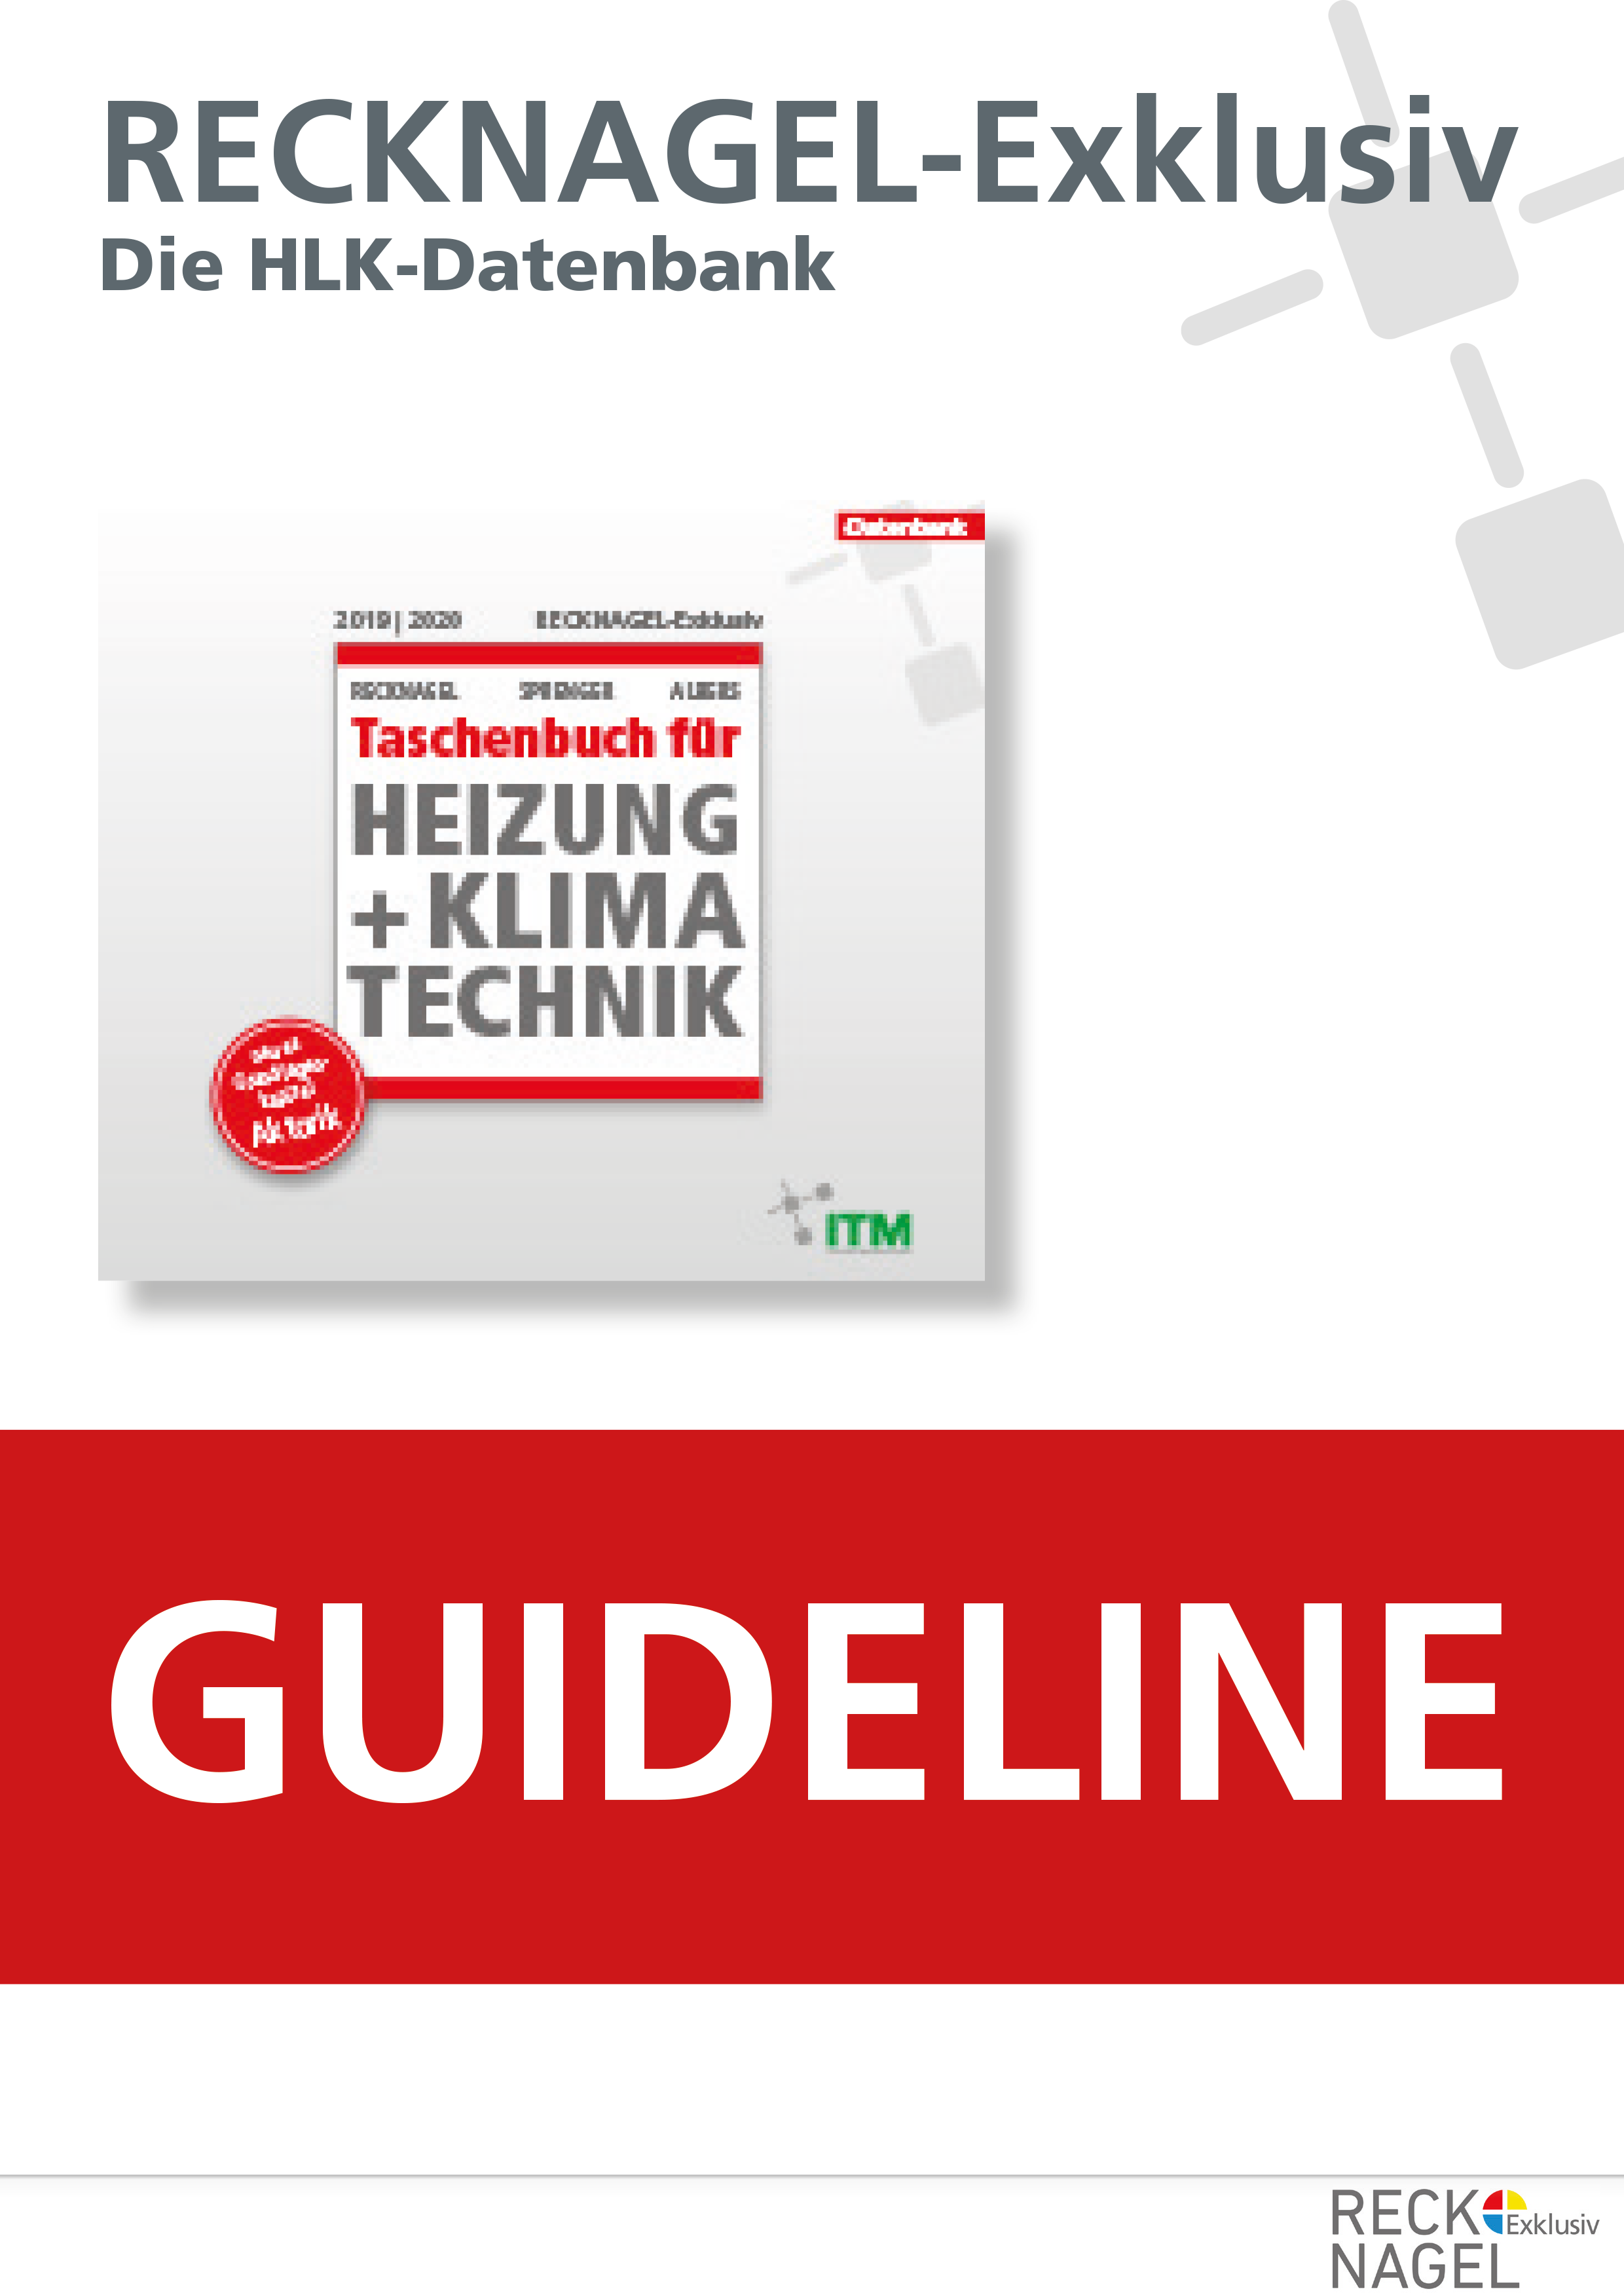 Guideline RECKNAGEL Exklusiv